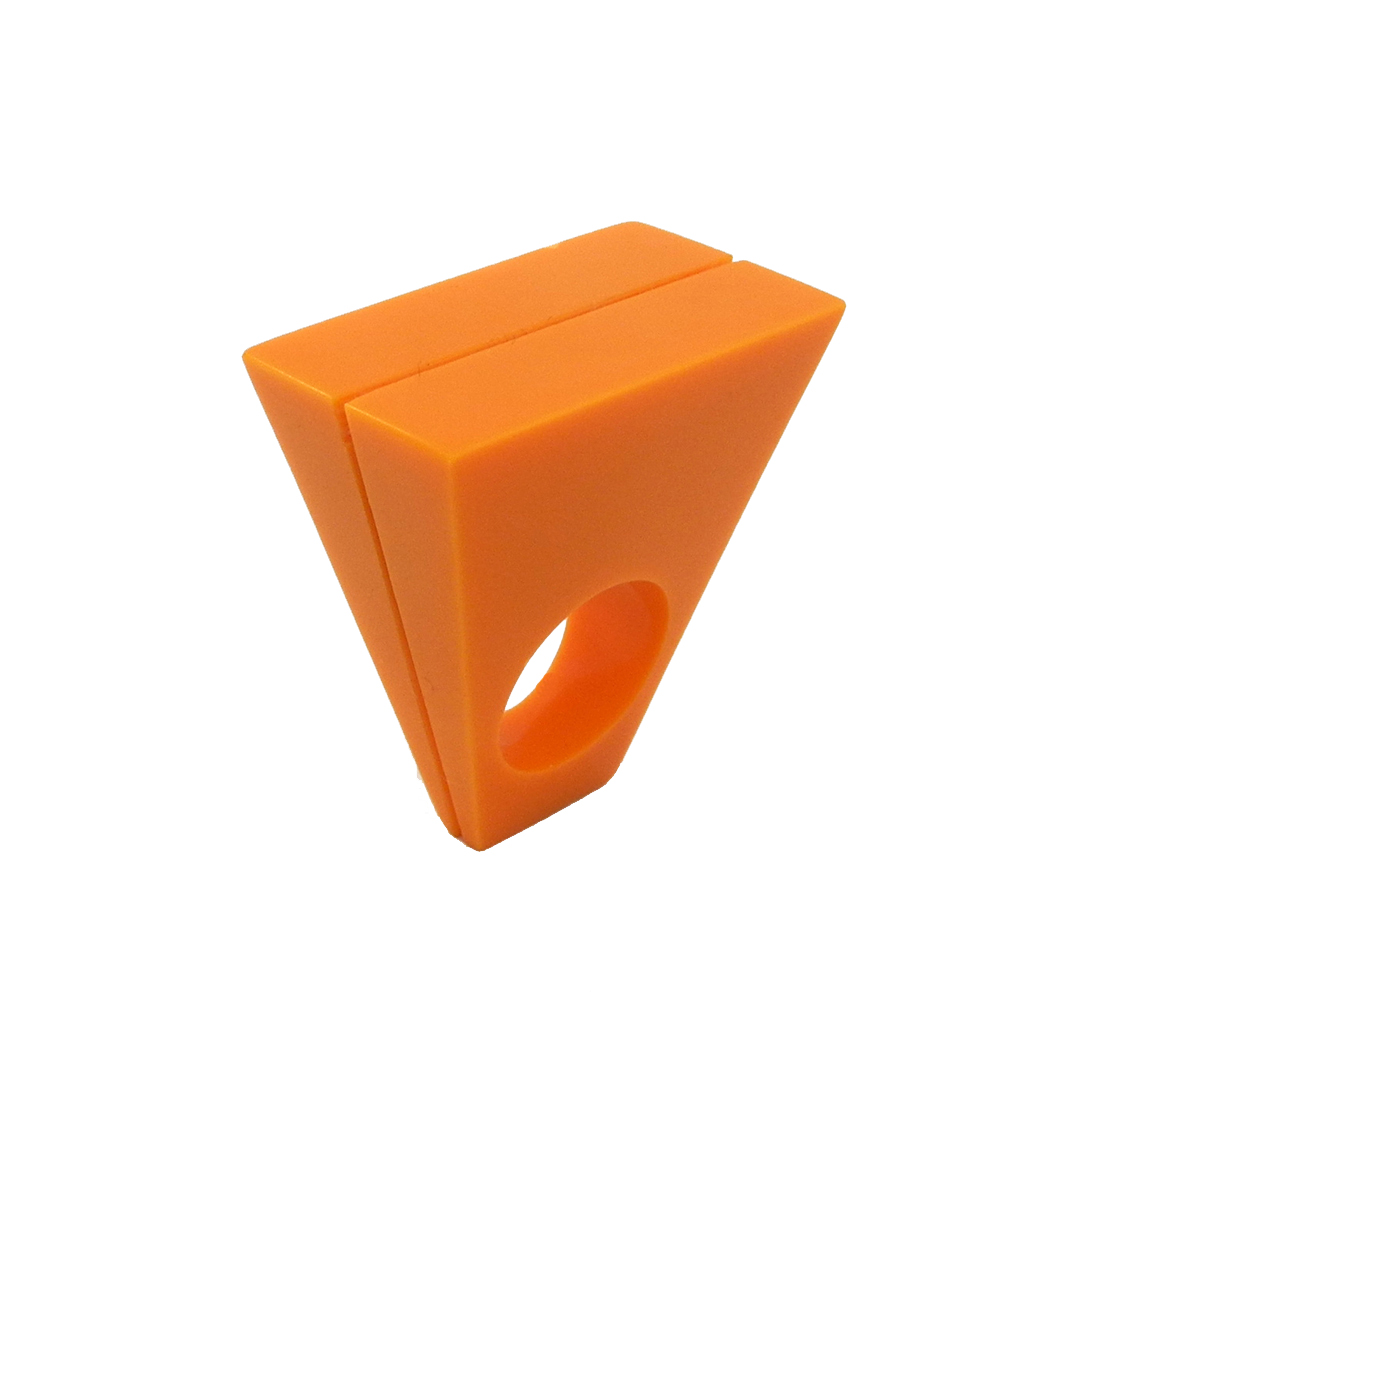 Sophie Thomas Orange Corian Ring